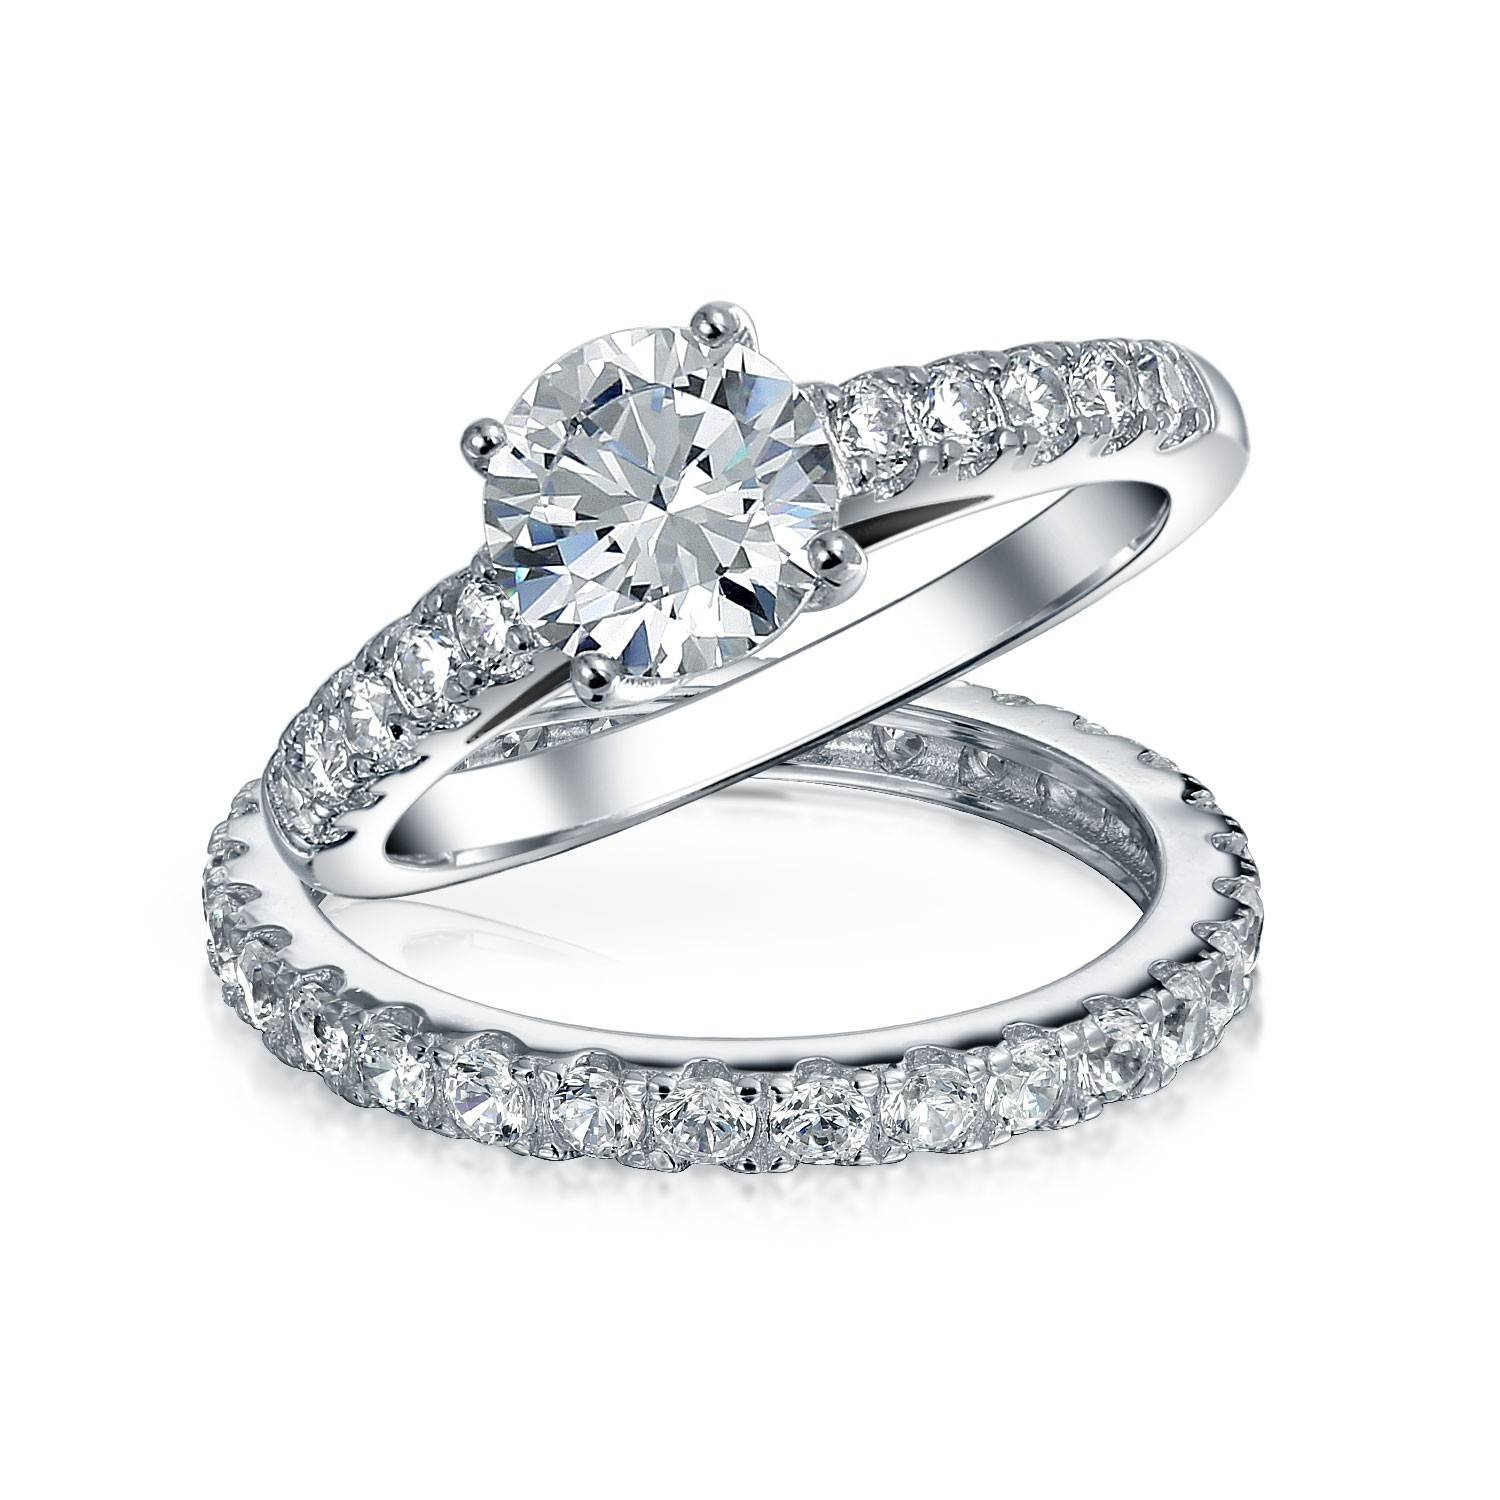 Unique Engagement Rings – Sterling Silver Cz Engagement Ring Sets Intended For Silver Diamond Wedding Rings (View 8 of 15)